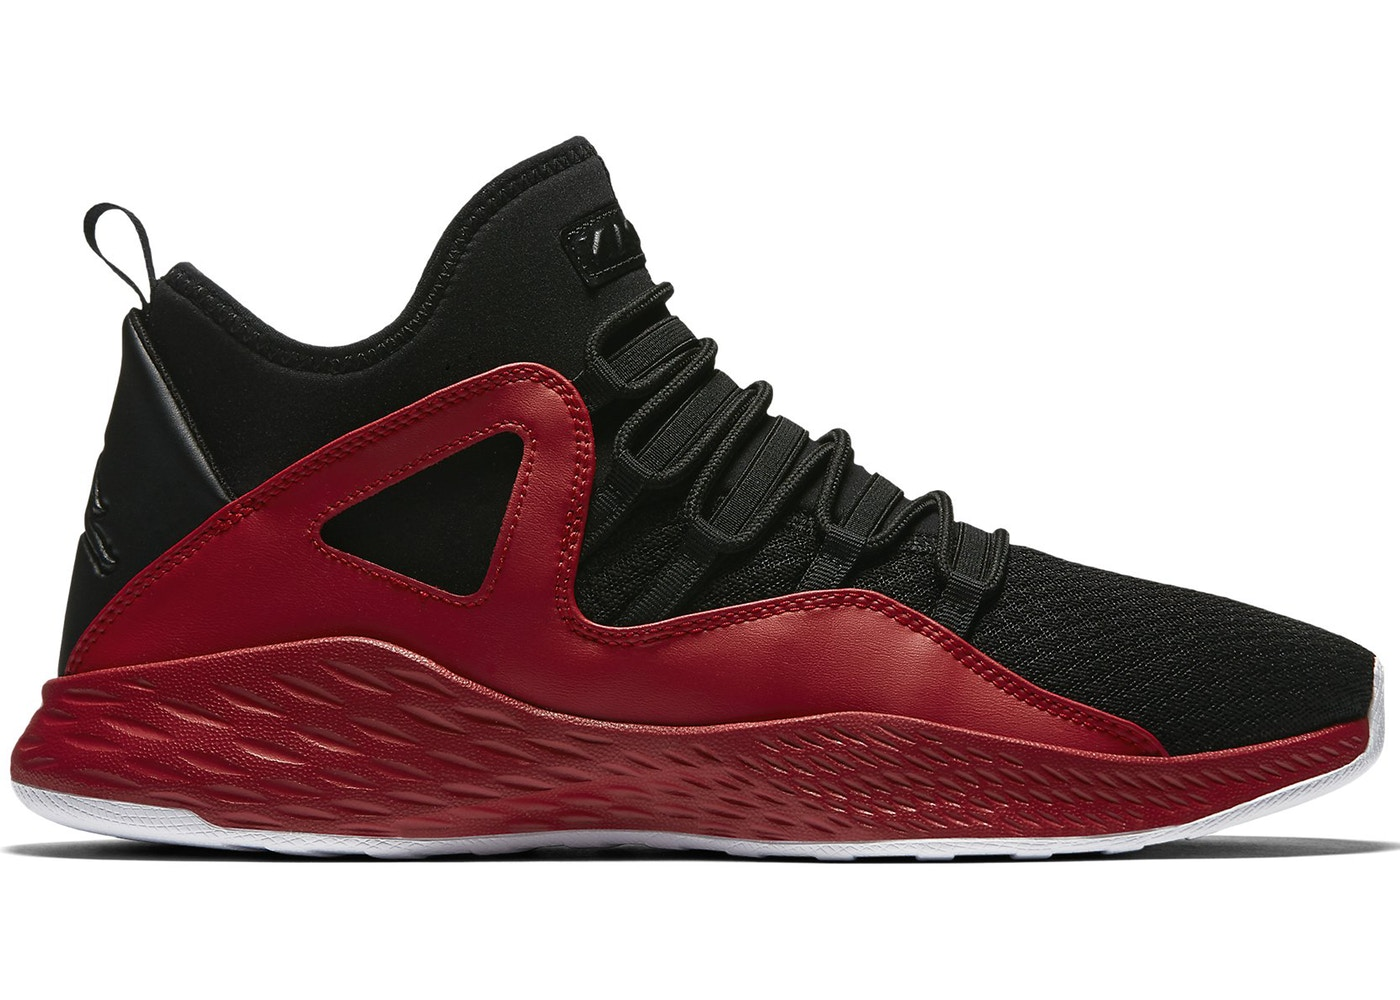 caccda4569e Sell. or Ask. Size: 10. View All Bids. Jordan Formula 23 Black Gym Red